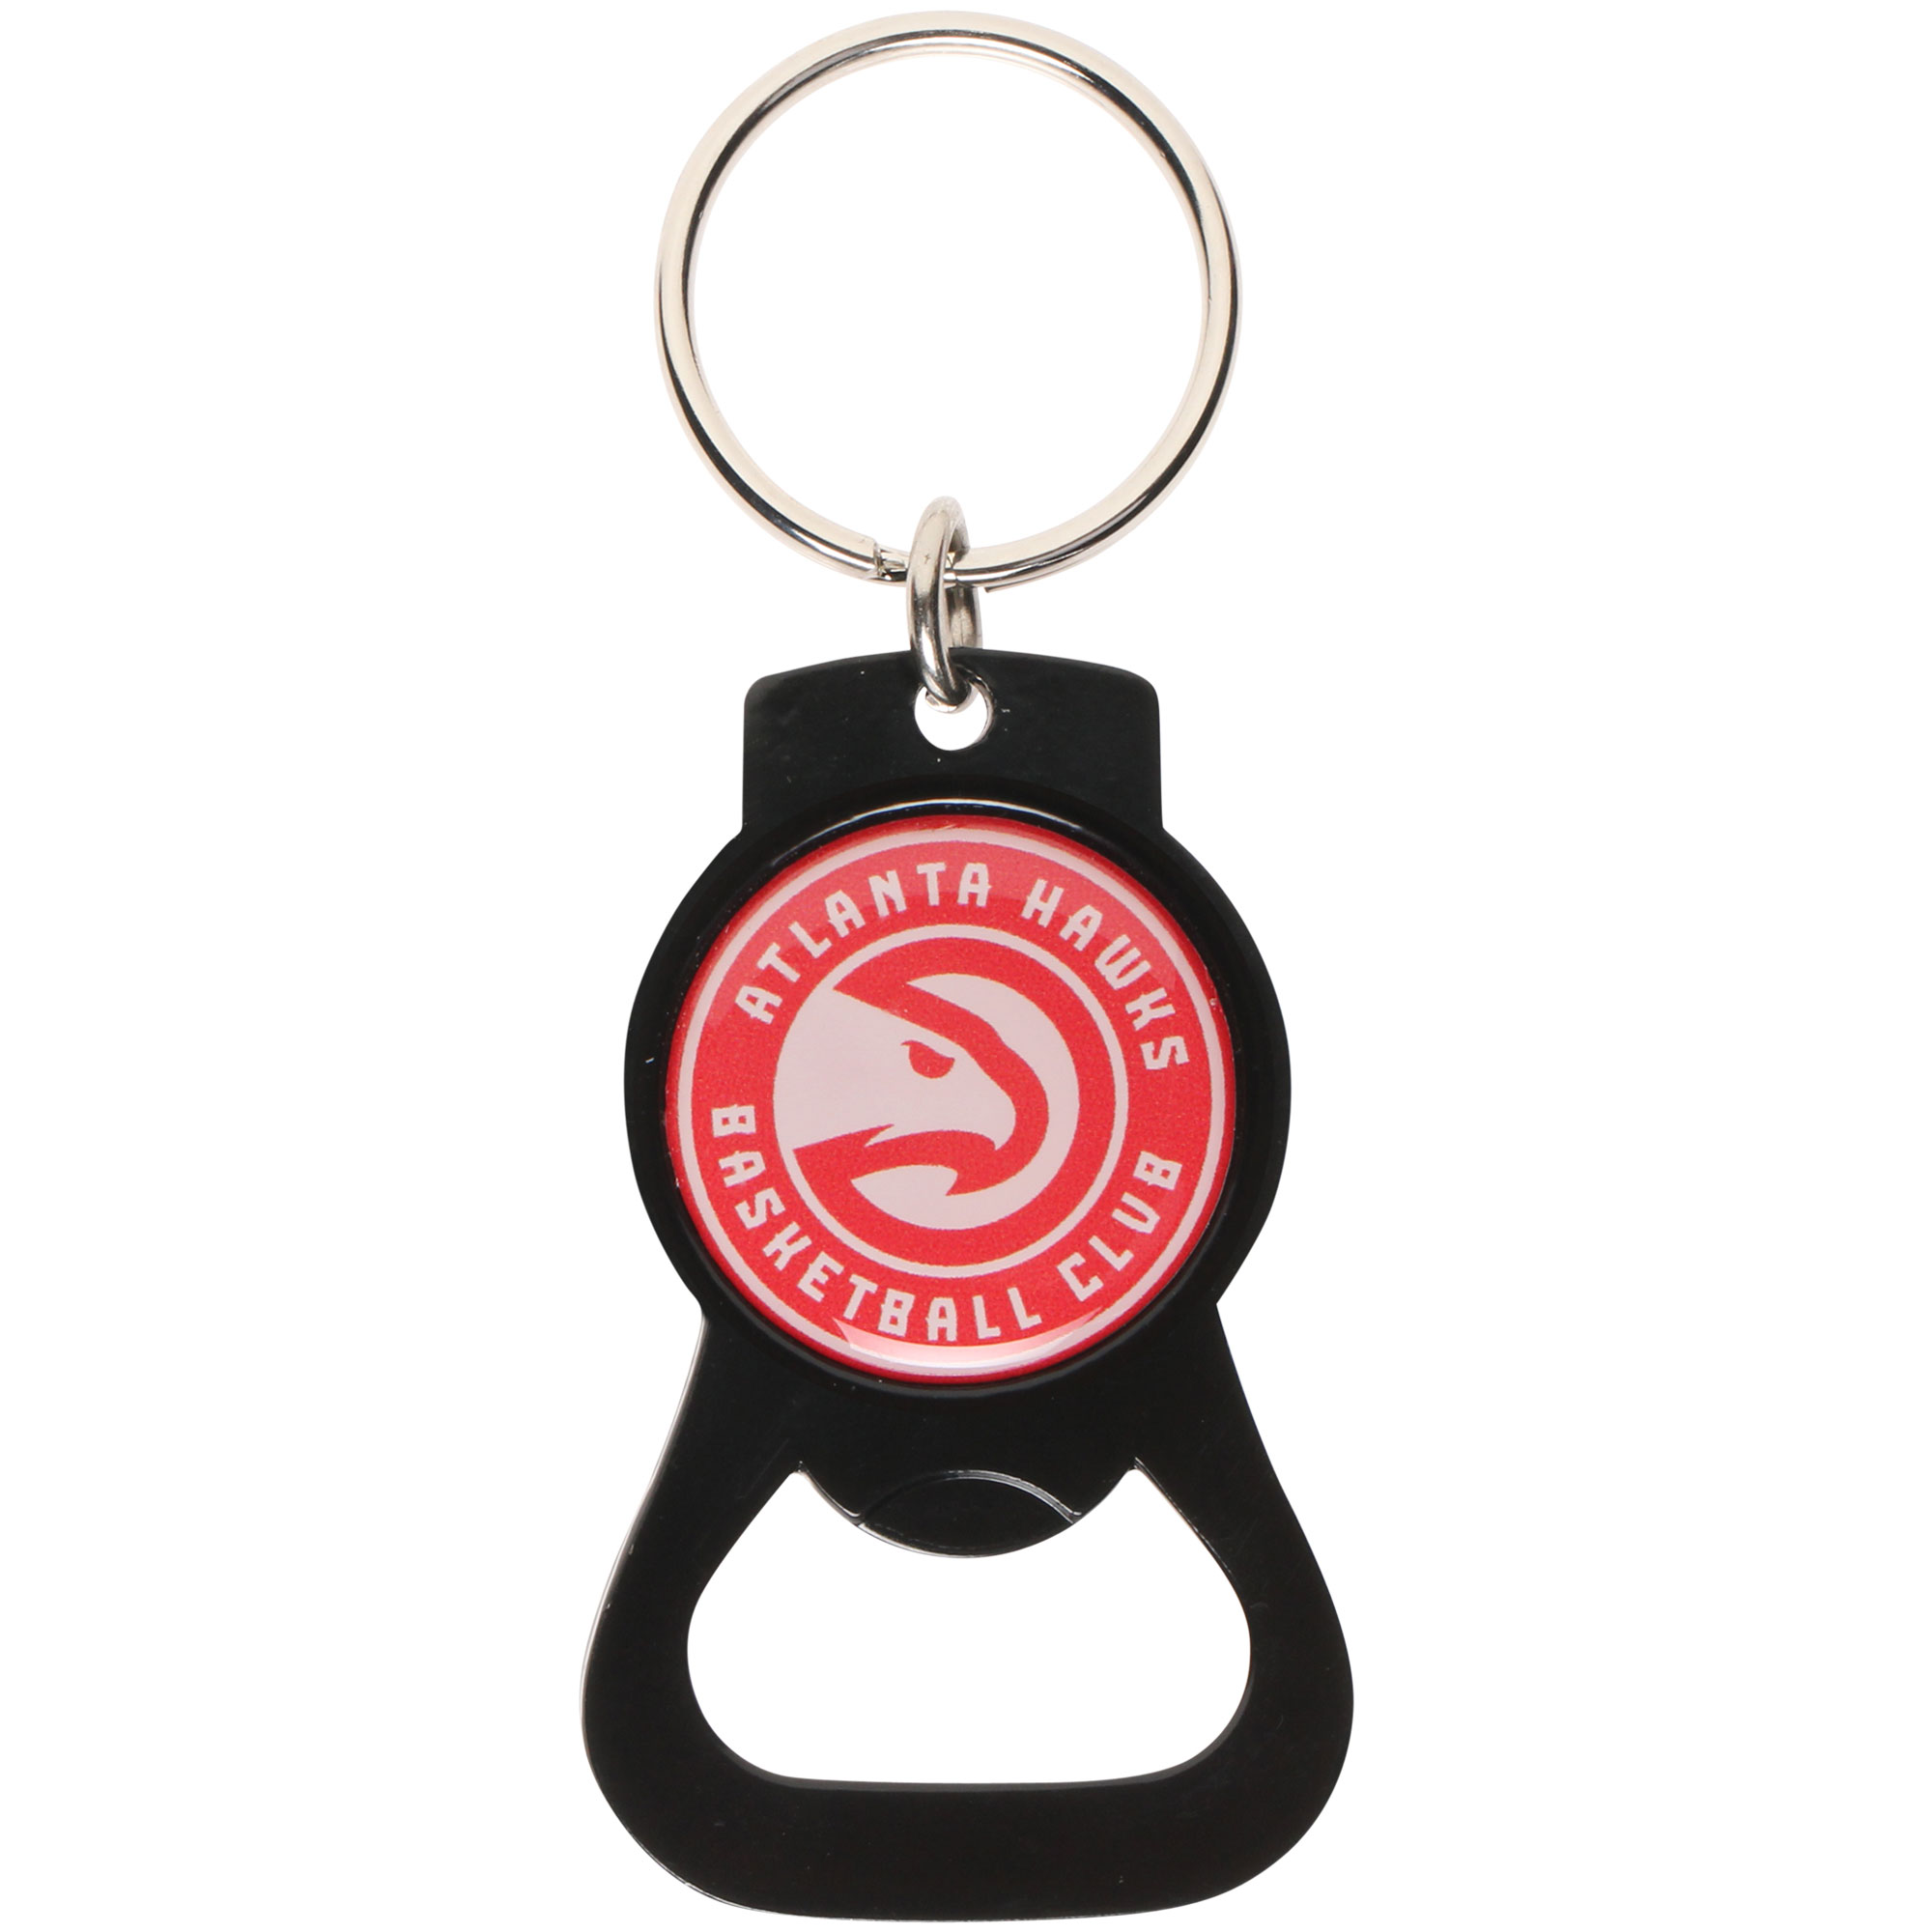 Atlanta Hawks Bottle Opener Keychain - Black - No Size